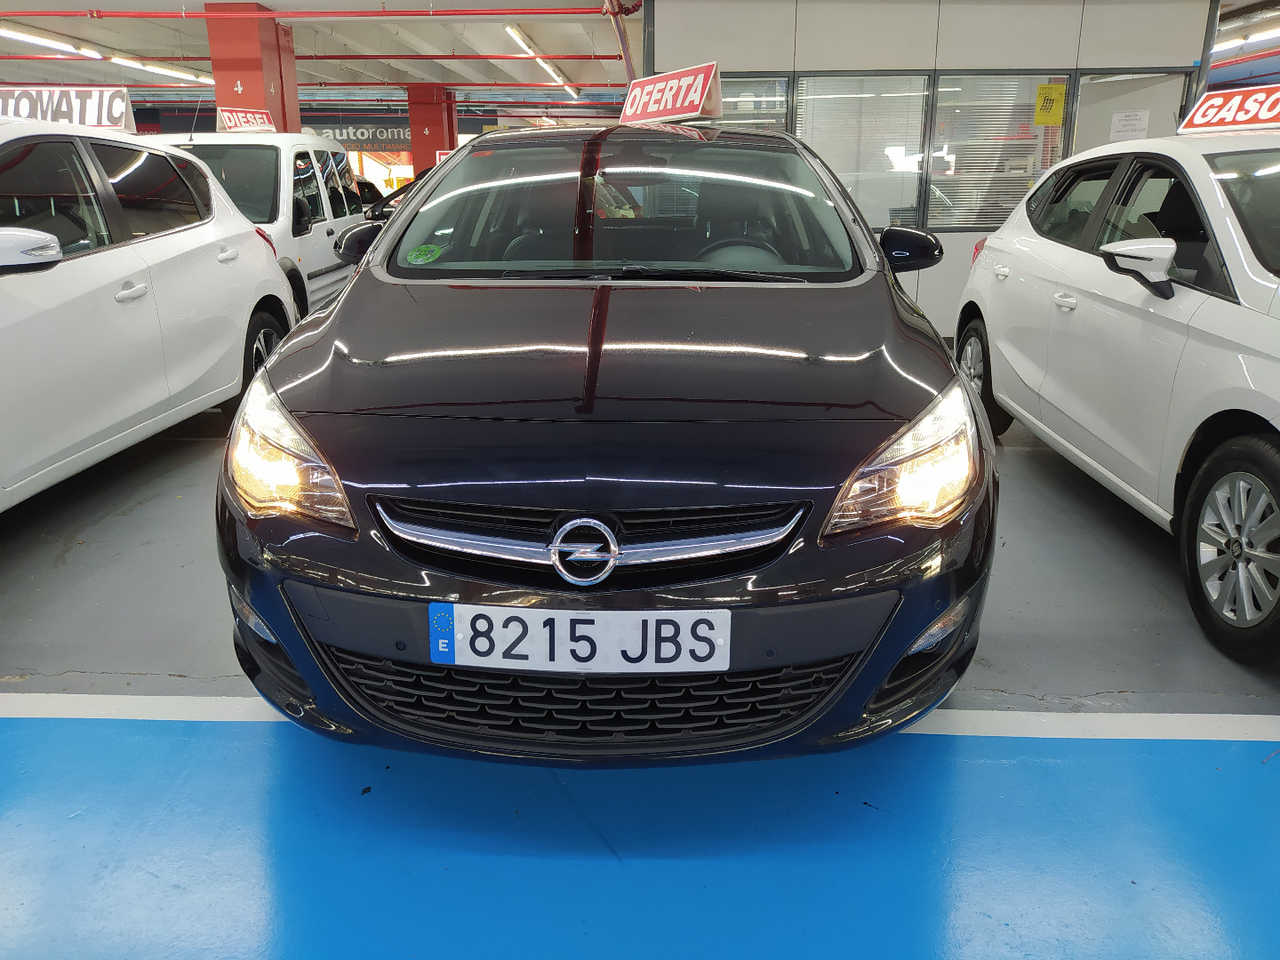 Opel Astra OPEL ASTRA 1.6 SELECTIVE  S&S 81KW 110CV   - Foto 1